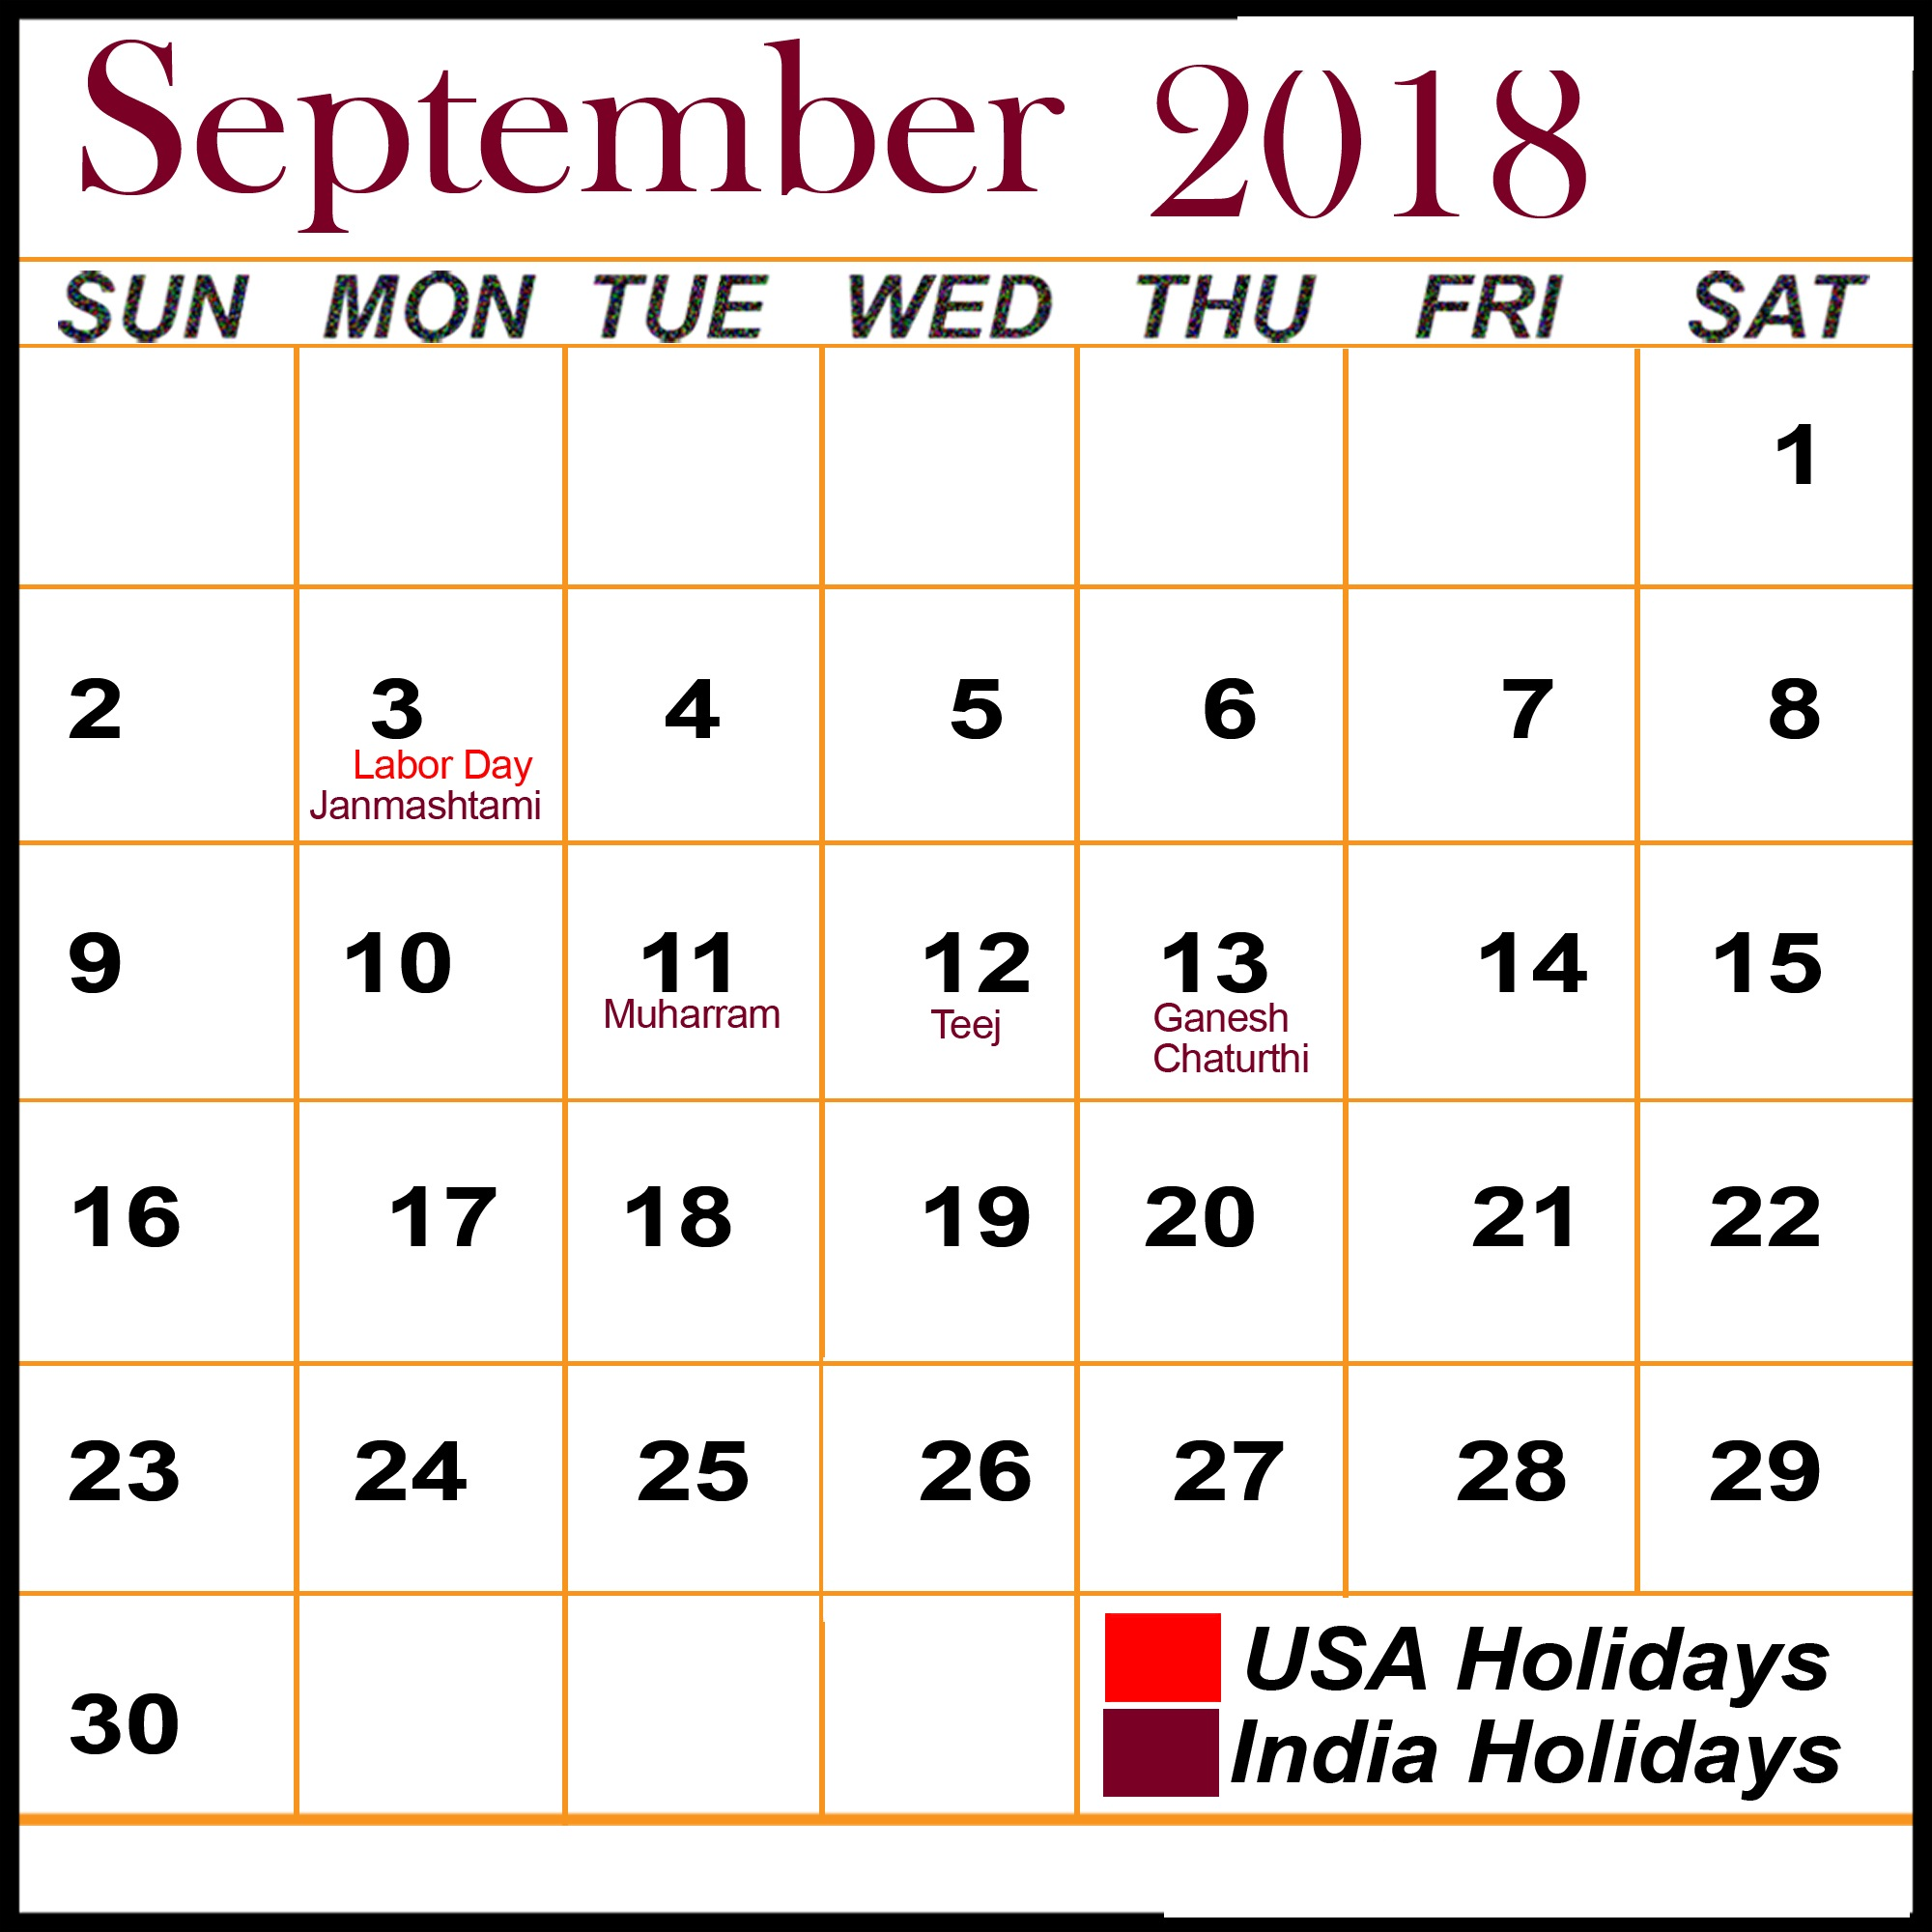 September 2018 Calendar With USA Holidays